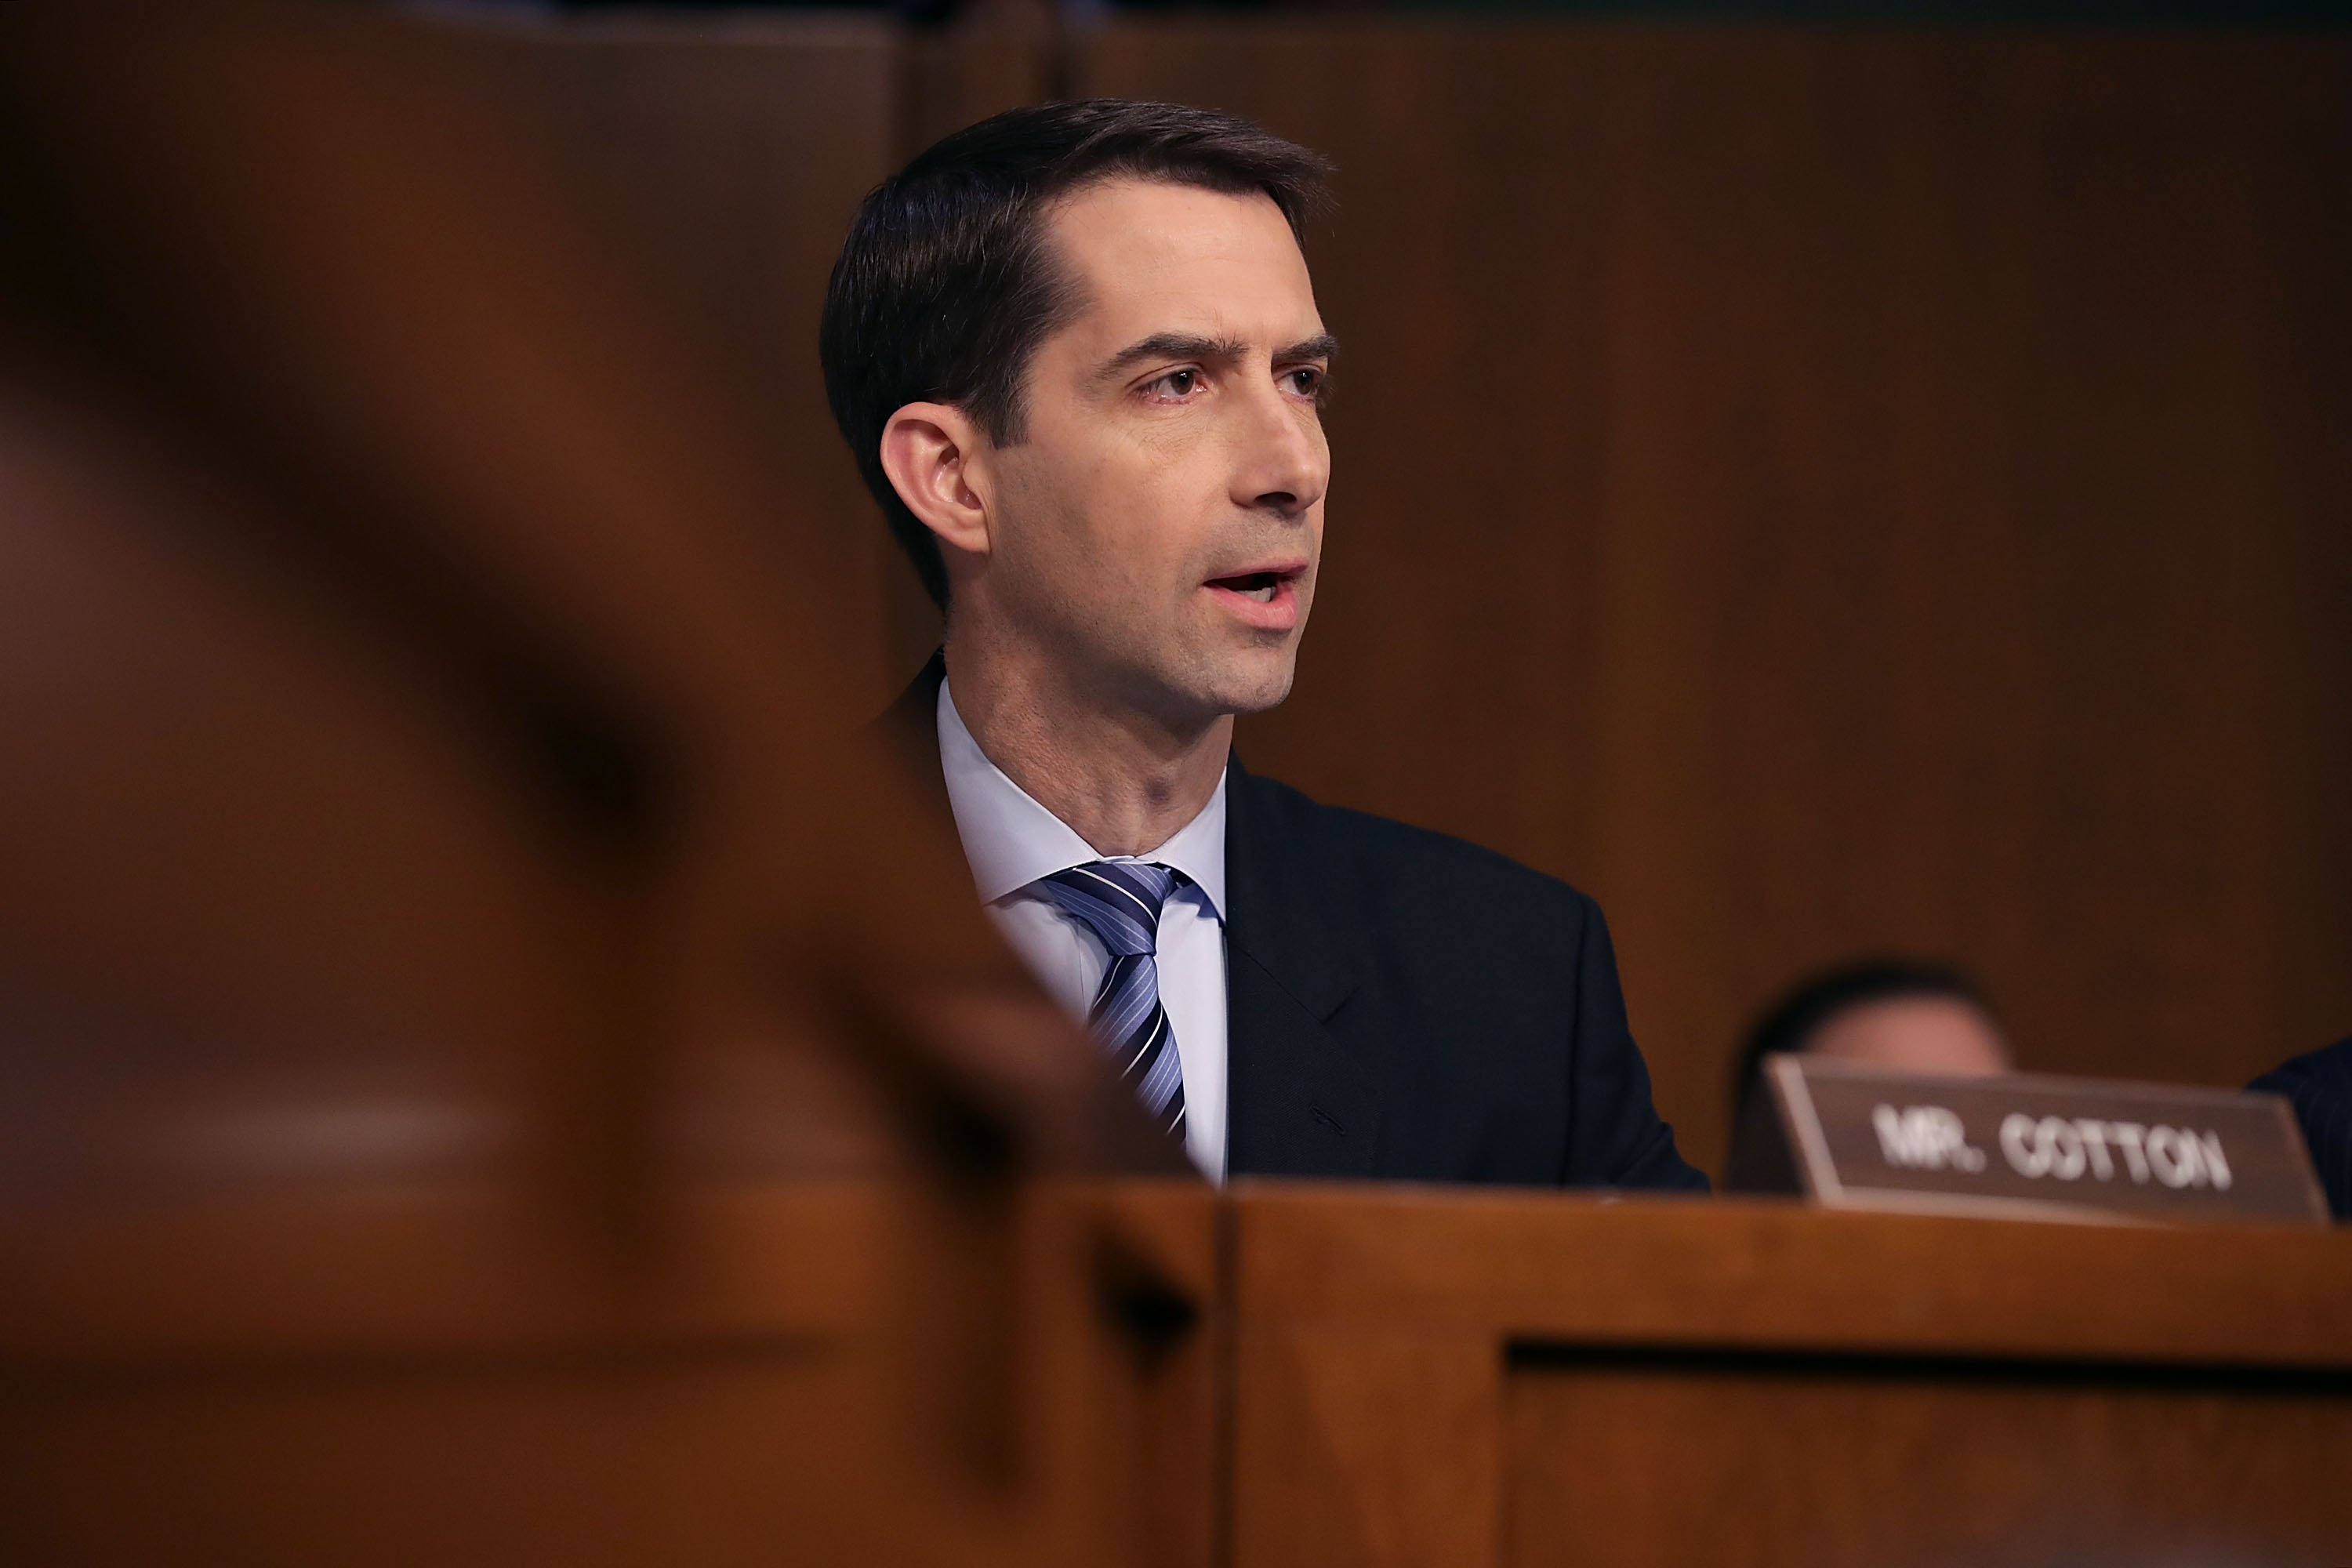 Sen. Tom Cotton says he floated the idea of buying Greenland to Trump